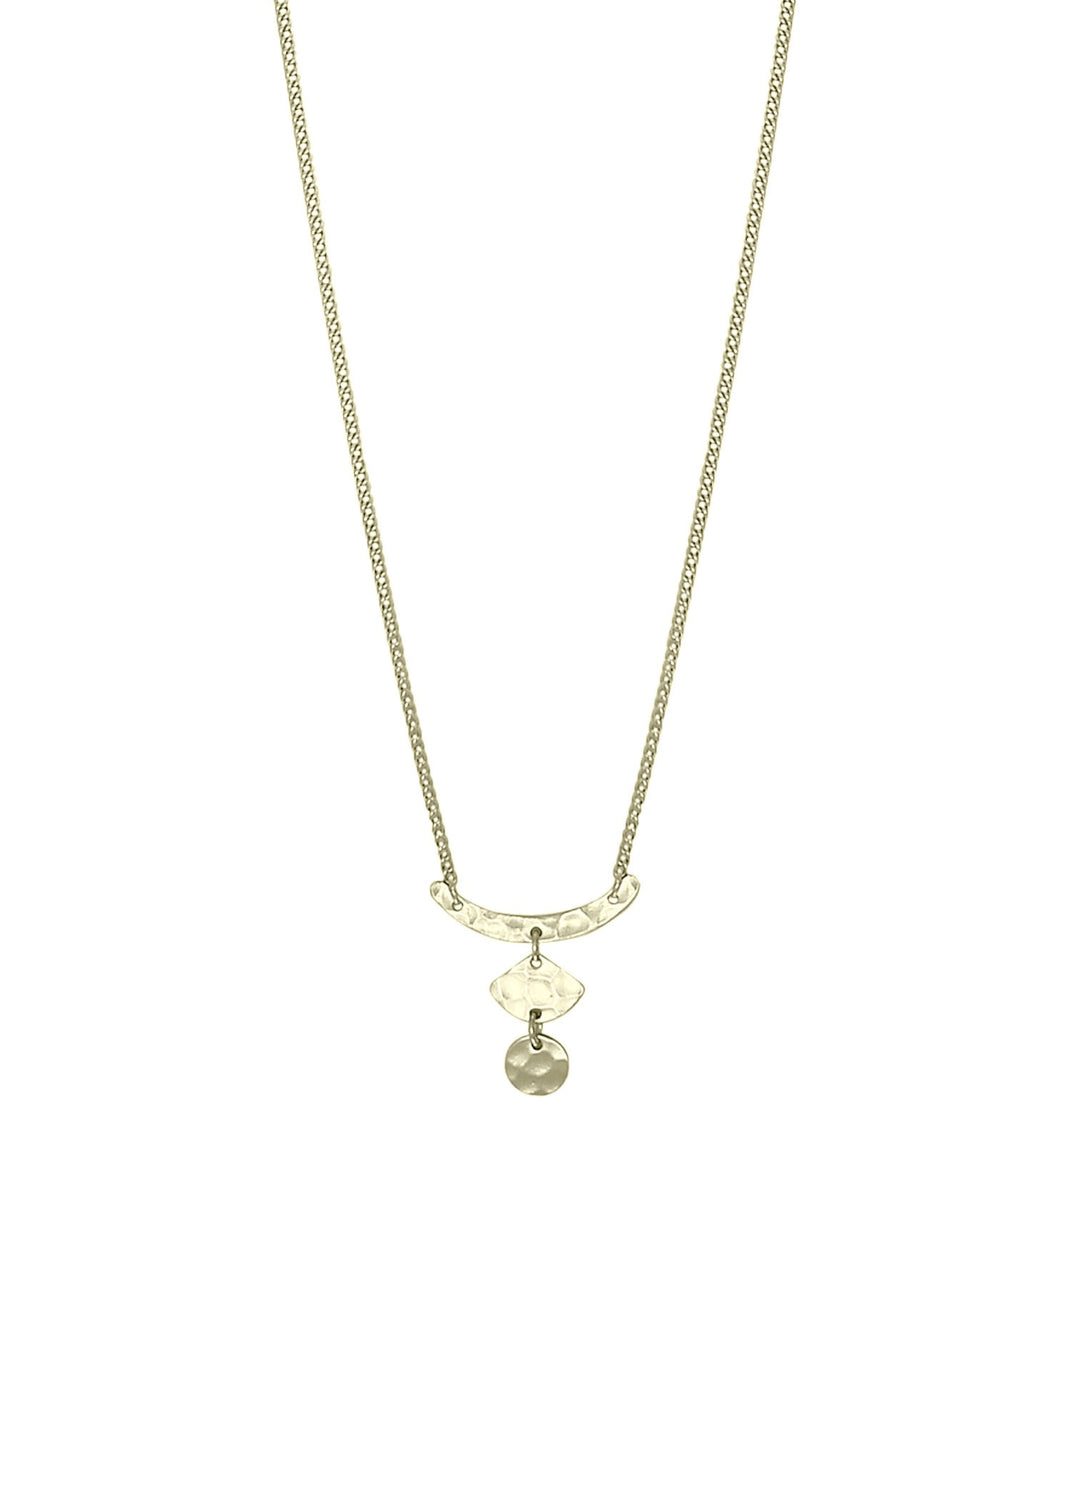 Nicole Fendel Ivy Drop Necklace